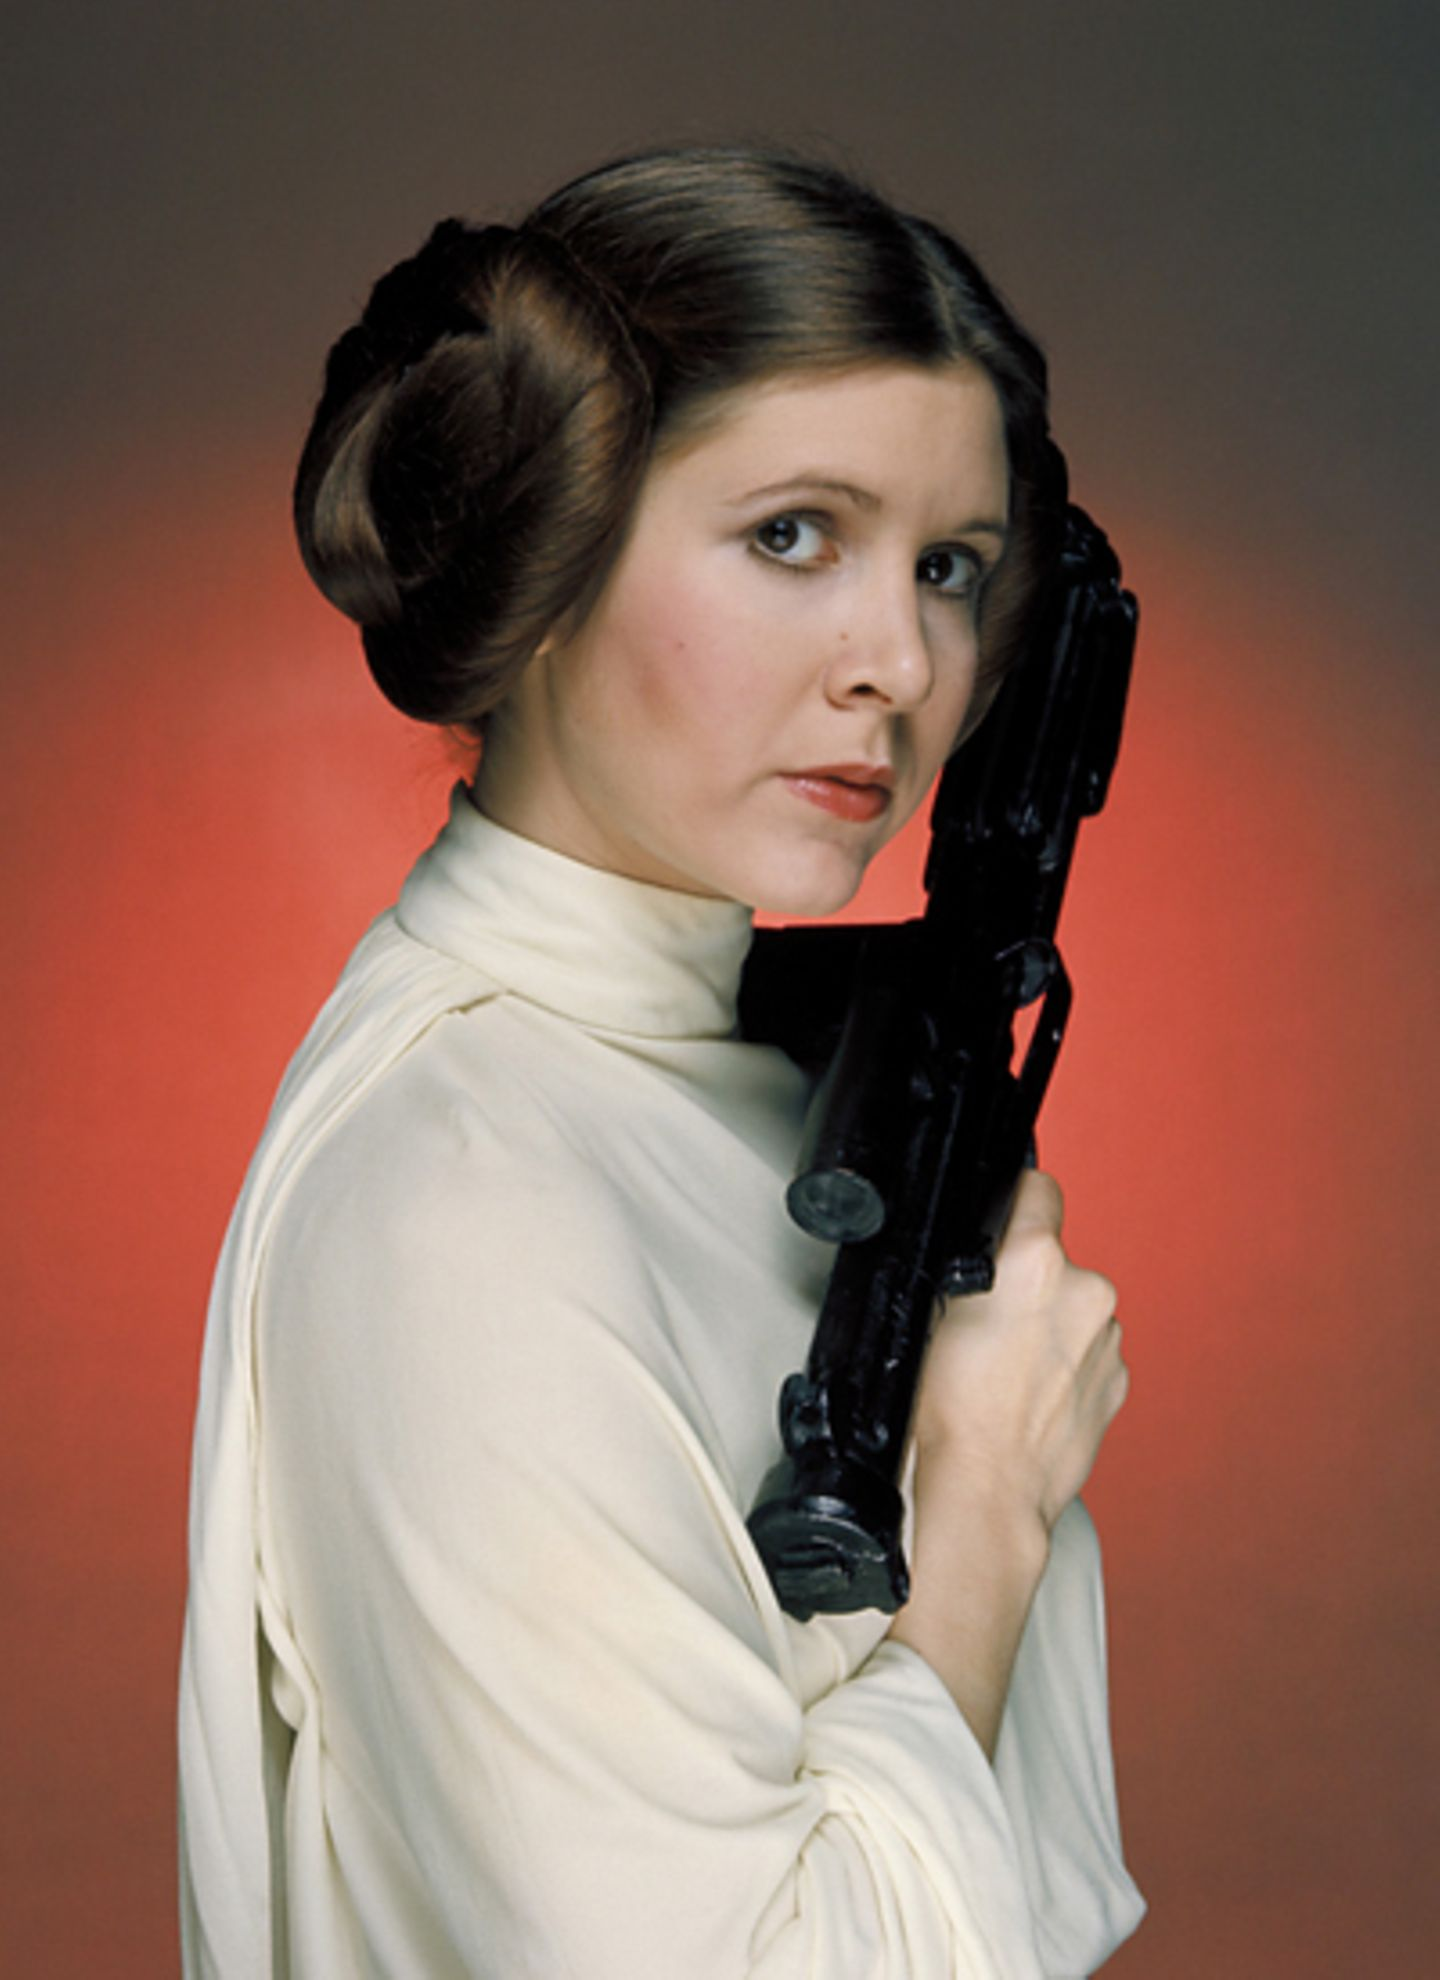 """Carrie Fisher als Prinzessin Leia Organa in """"Star Wars"""""""